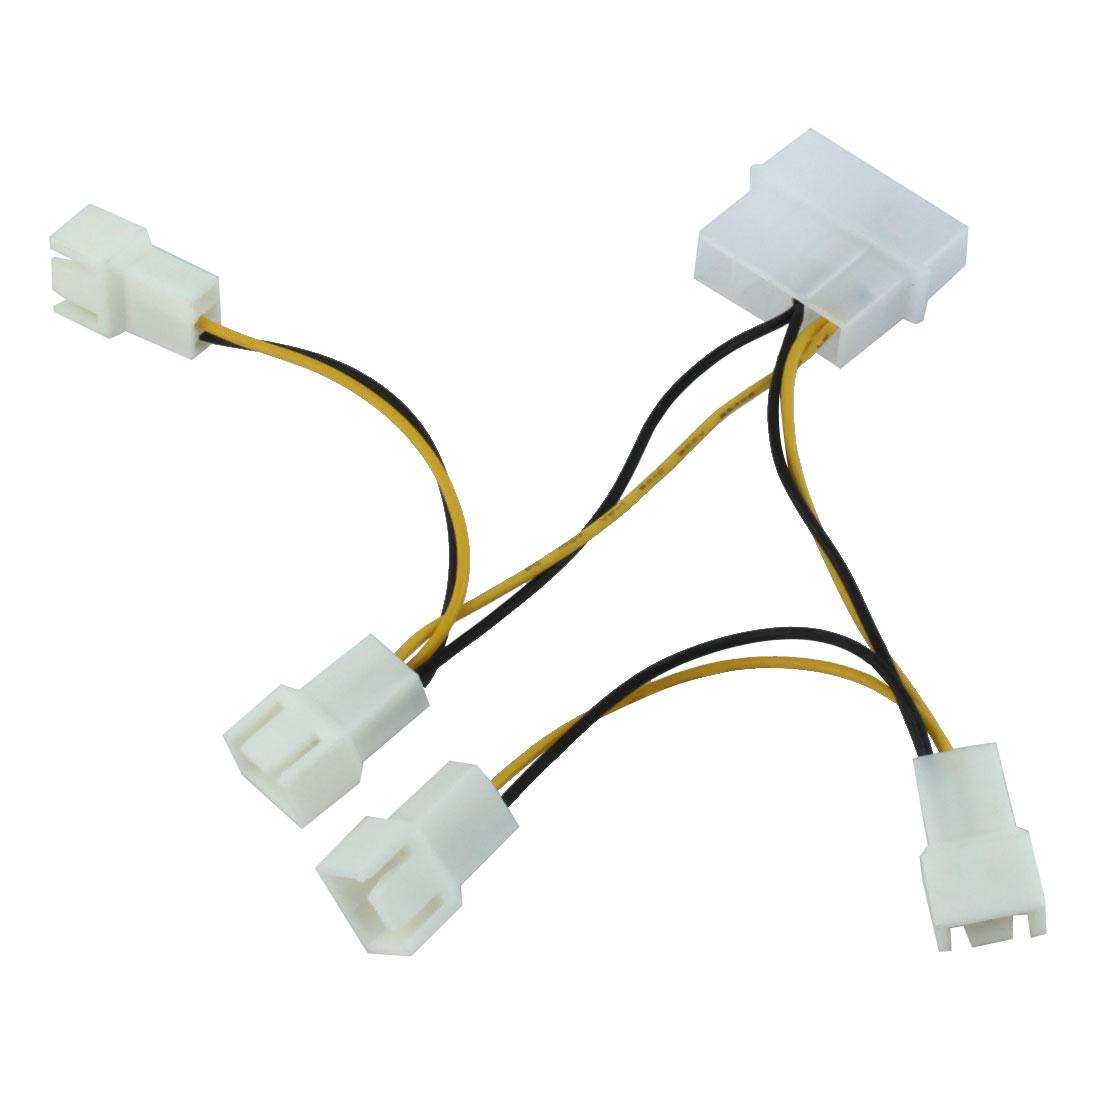 PC Cooler Cooling Fan 4 Terminals IDE to 4 x 12V 3 Terminals Power Connector Adapter Cable